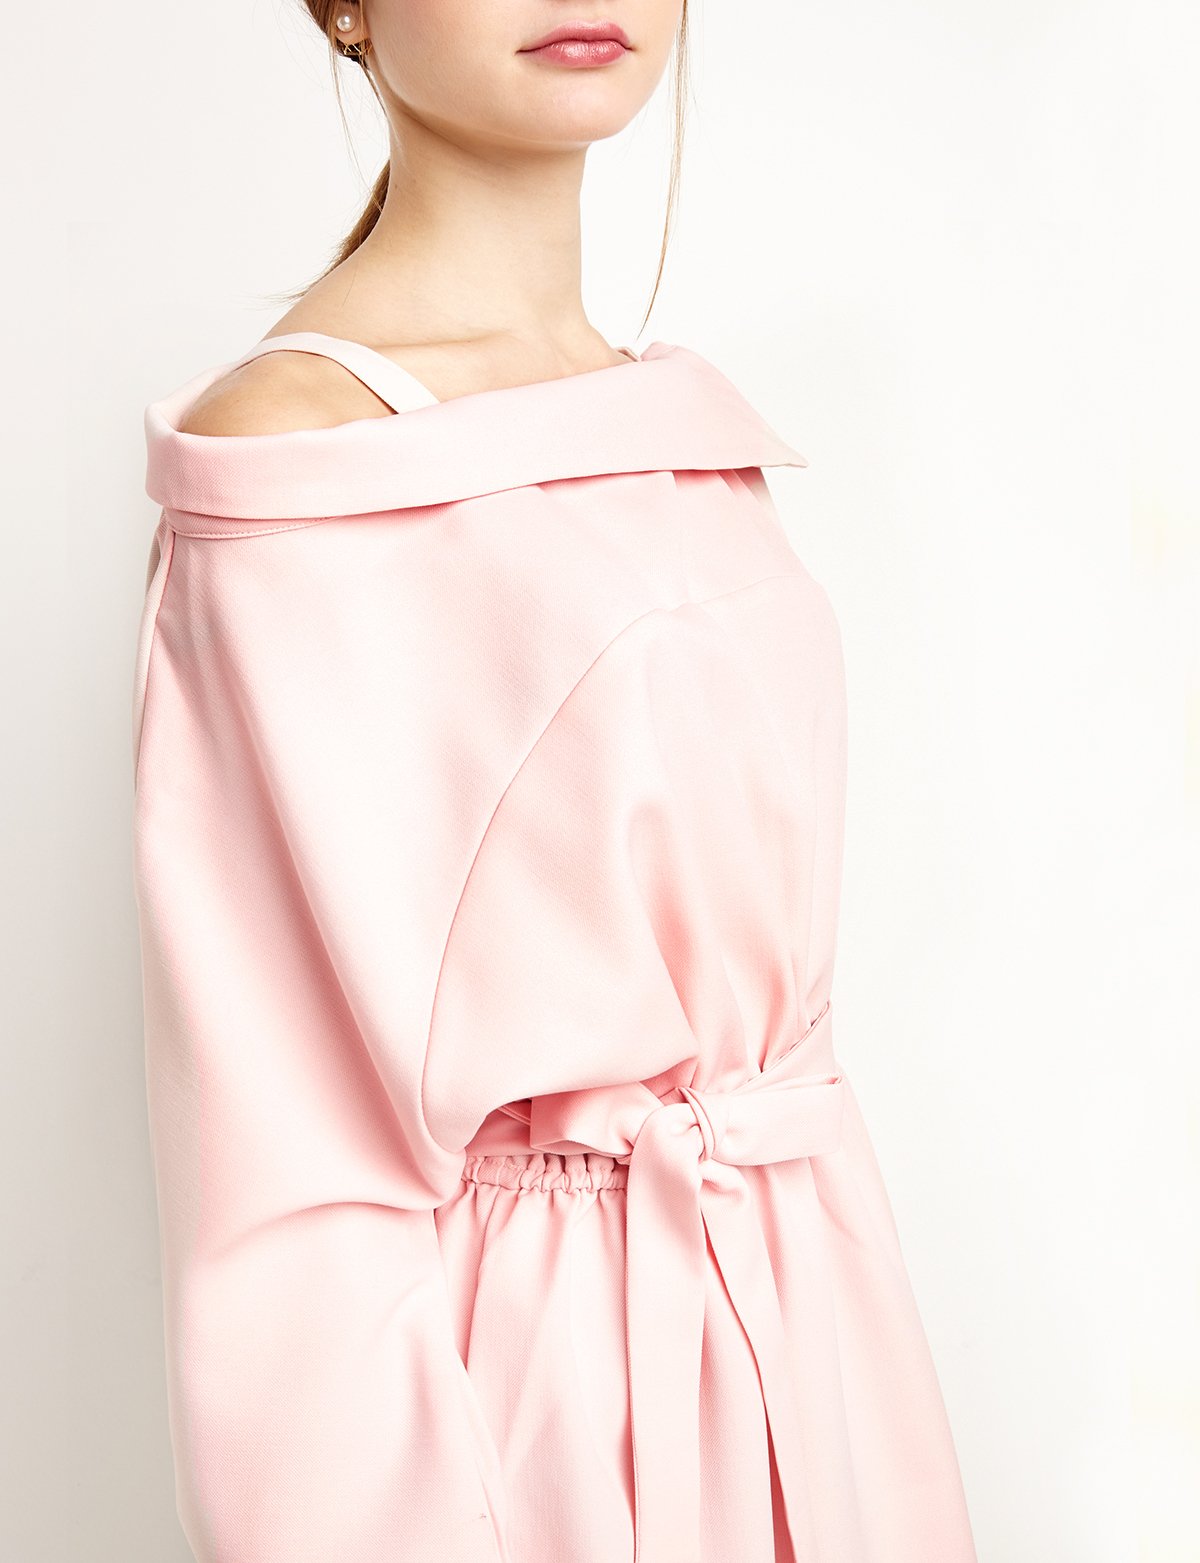 edcc562ba402 Lyst - Pixie Market Pale Pink Off The Shoulder Shirt Dress in Pink